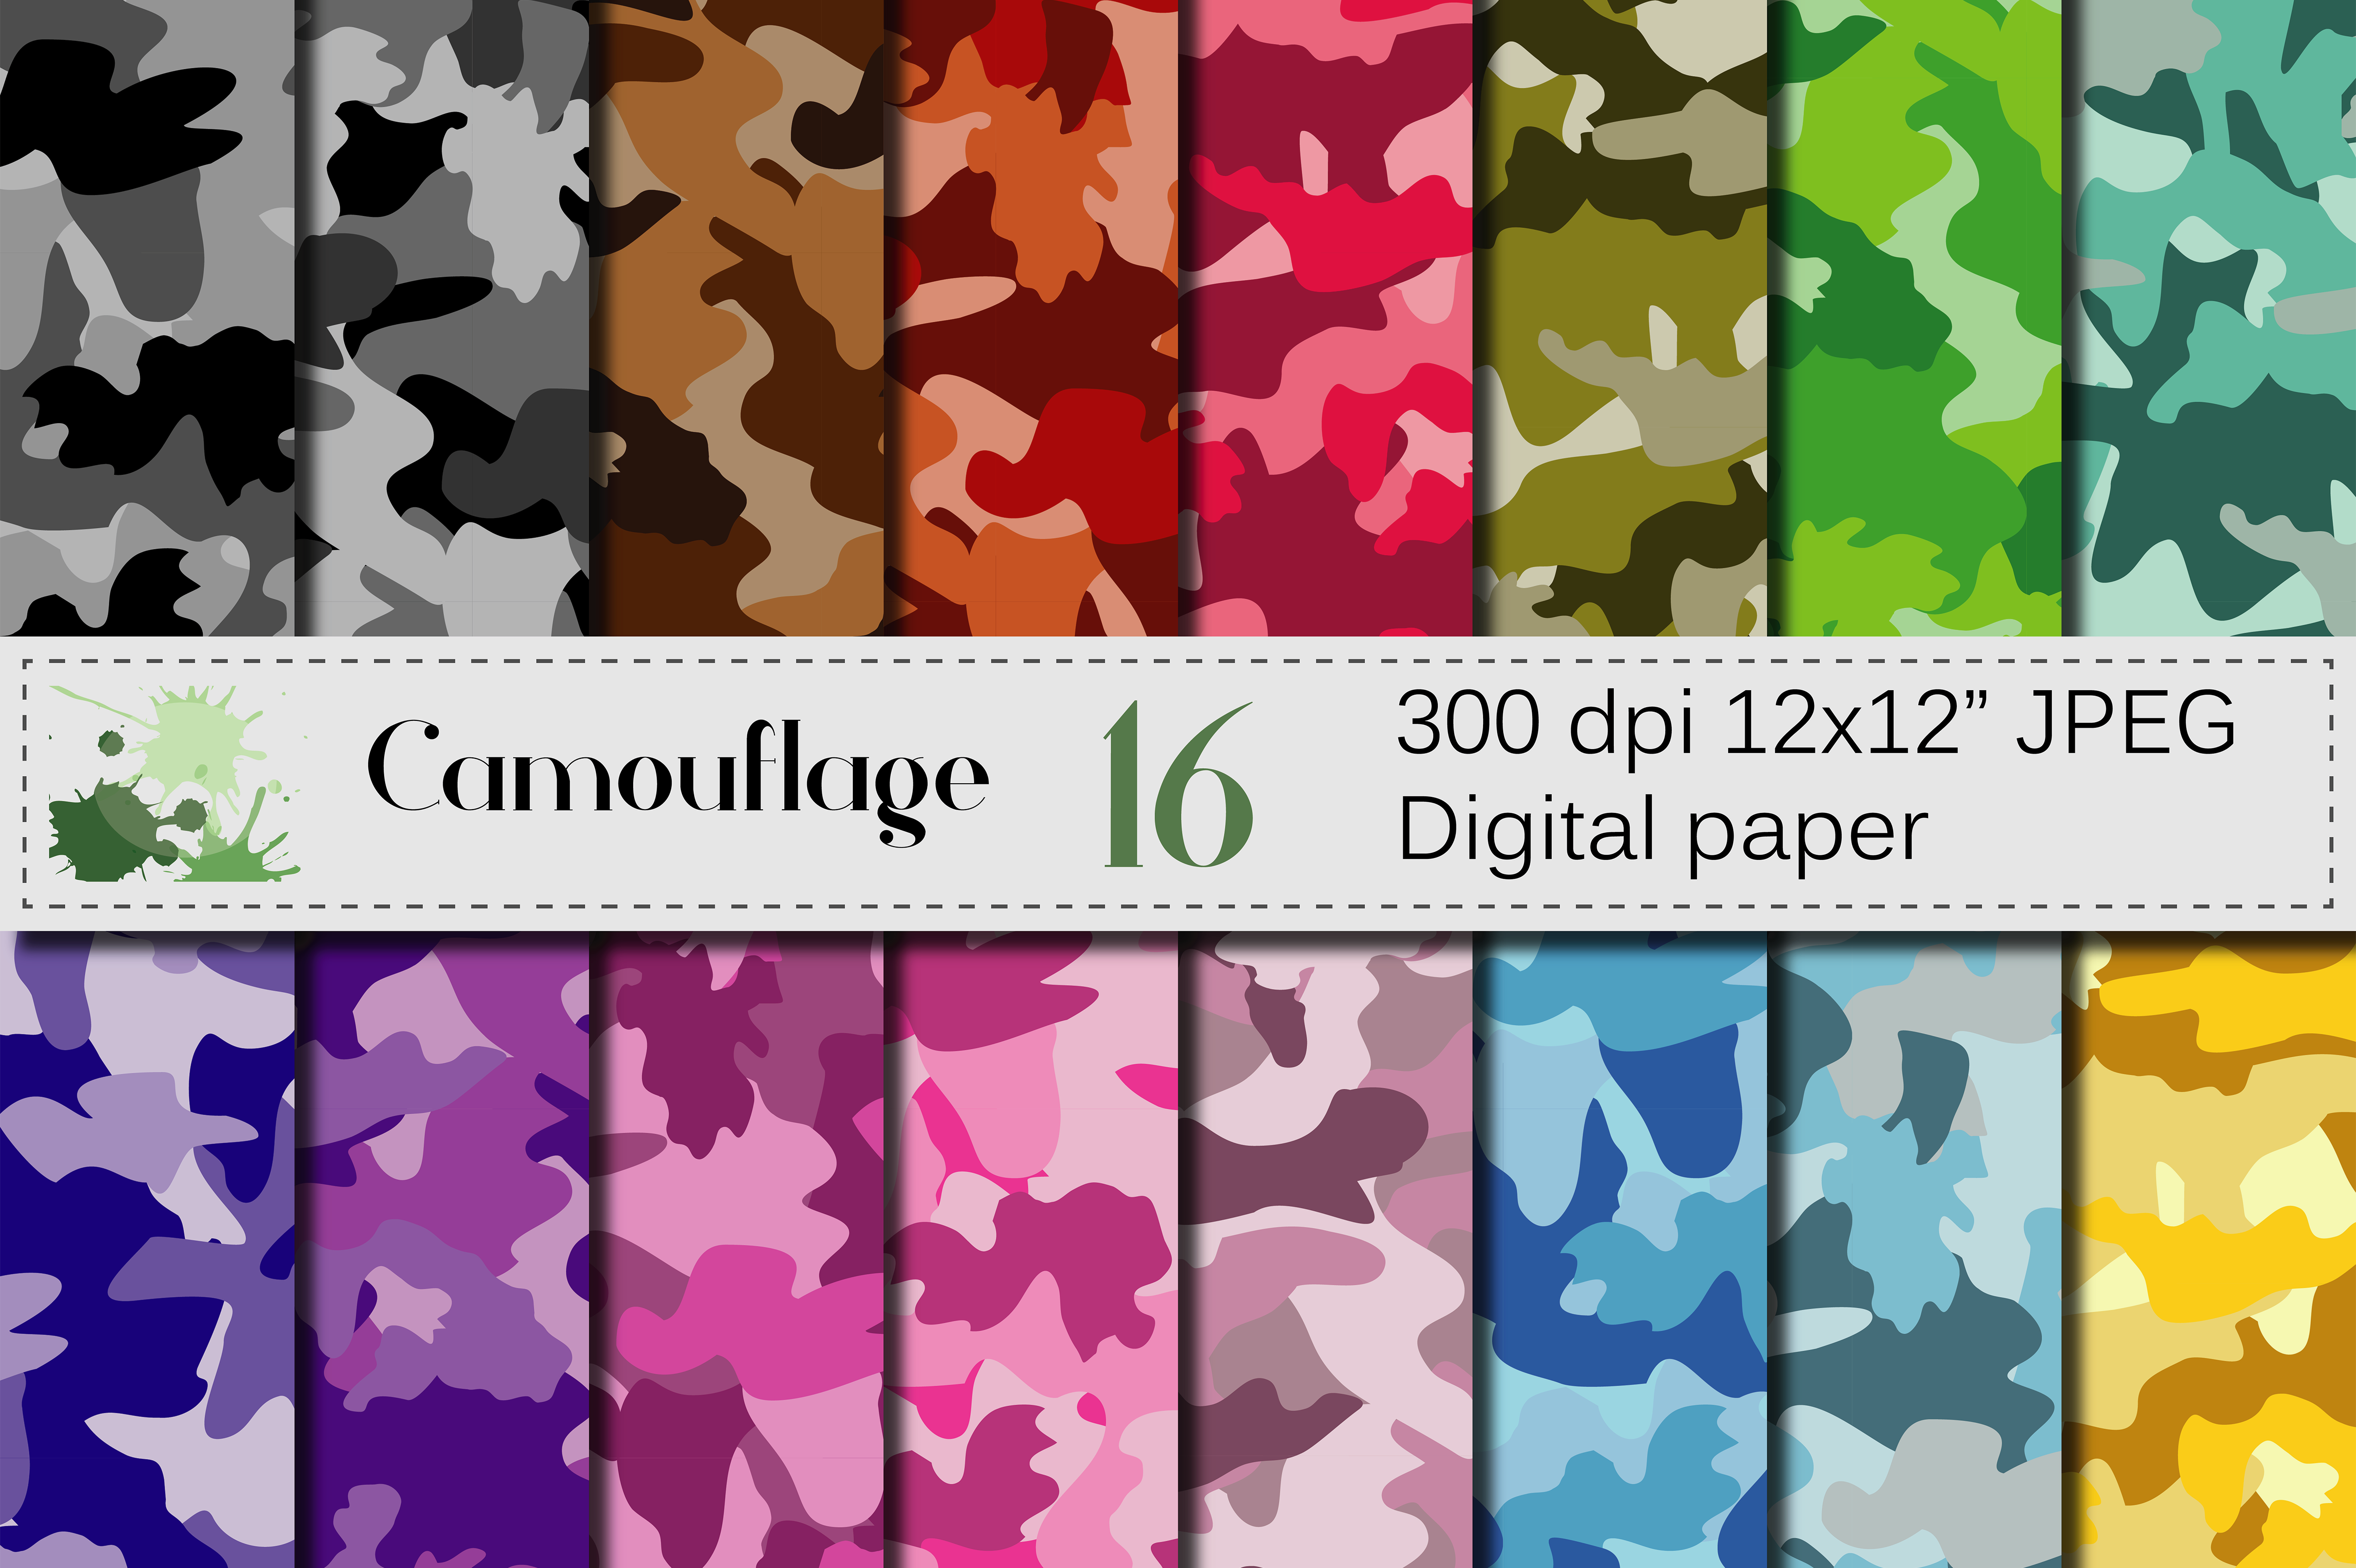 Camouflage Digital Paper Graphic Backgrounds By VR Digital Design